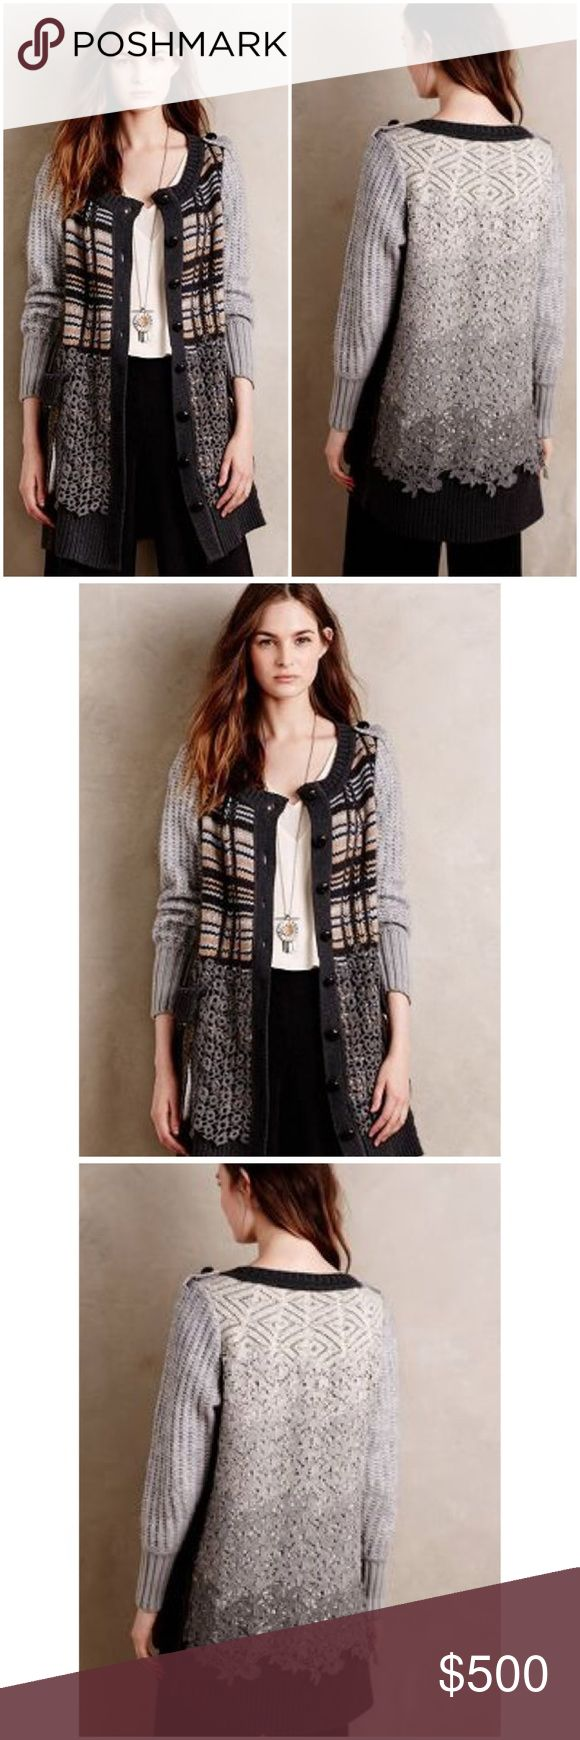 Anthropologie Byron Lars Jalea Cardigan San Francisco native Byron Lars has been part of the fashion landscape since his 1991 debut collection garnered an uproar of praise. With each collection since, he's proven his mastery of fit by crafting body-conscious silhouettes that toe a careful line between coquettish and ladylike, all while being nearly universally flattering.❤️ From Byron Lars Beauty MarkPolyester, acrylic, wool, viscose, mohair, alpaca knitLace back detailPatch pocketsButton…